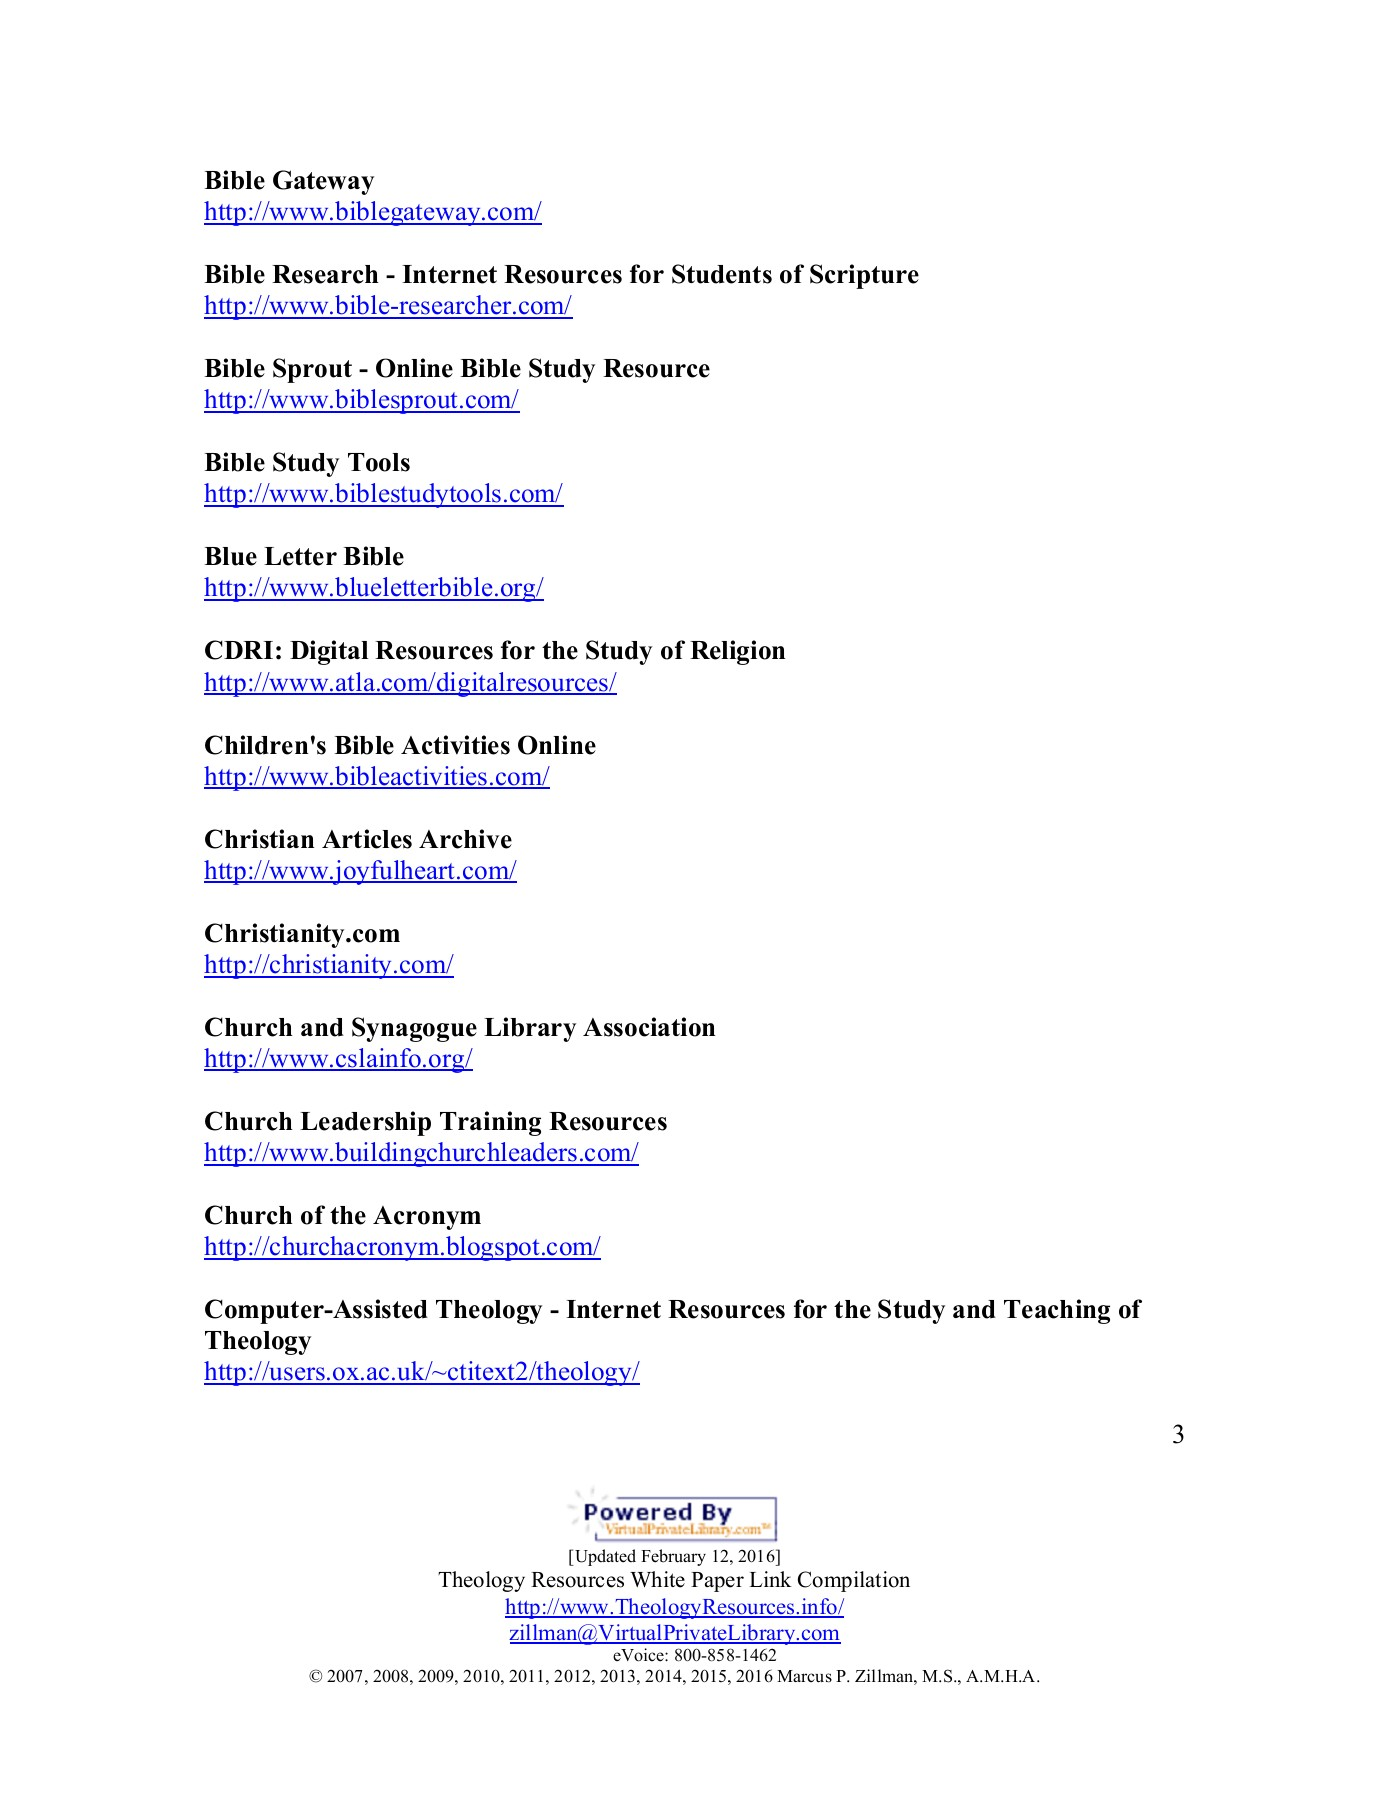 Theology Resources on the Internet 2016